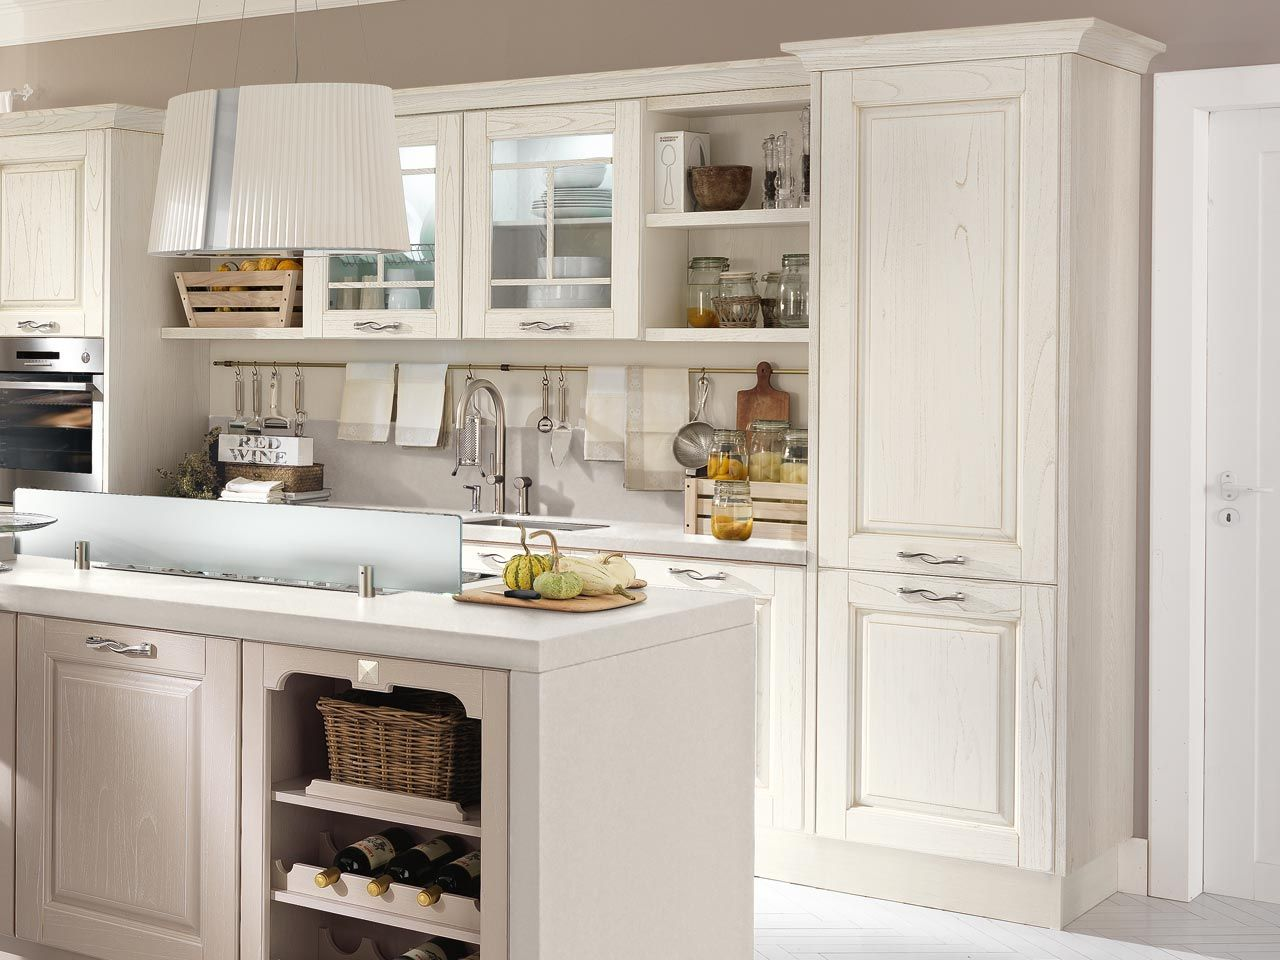 Laura - Cucine Lube | Apartment ideas! | Cucine, Cucine ...